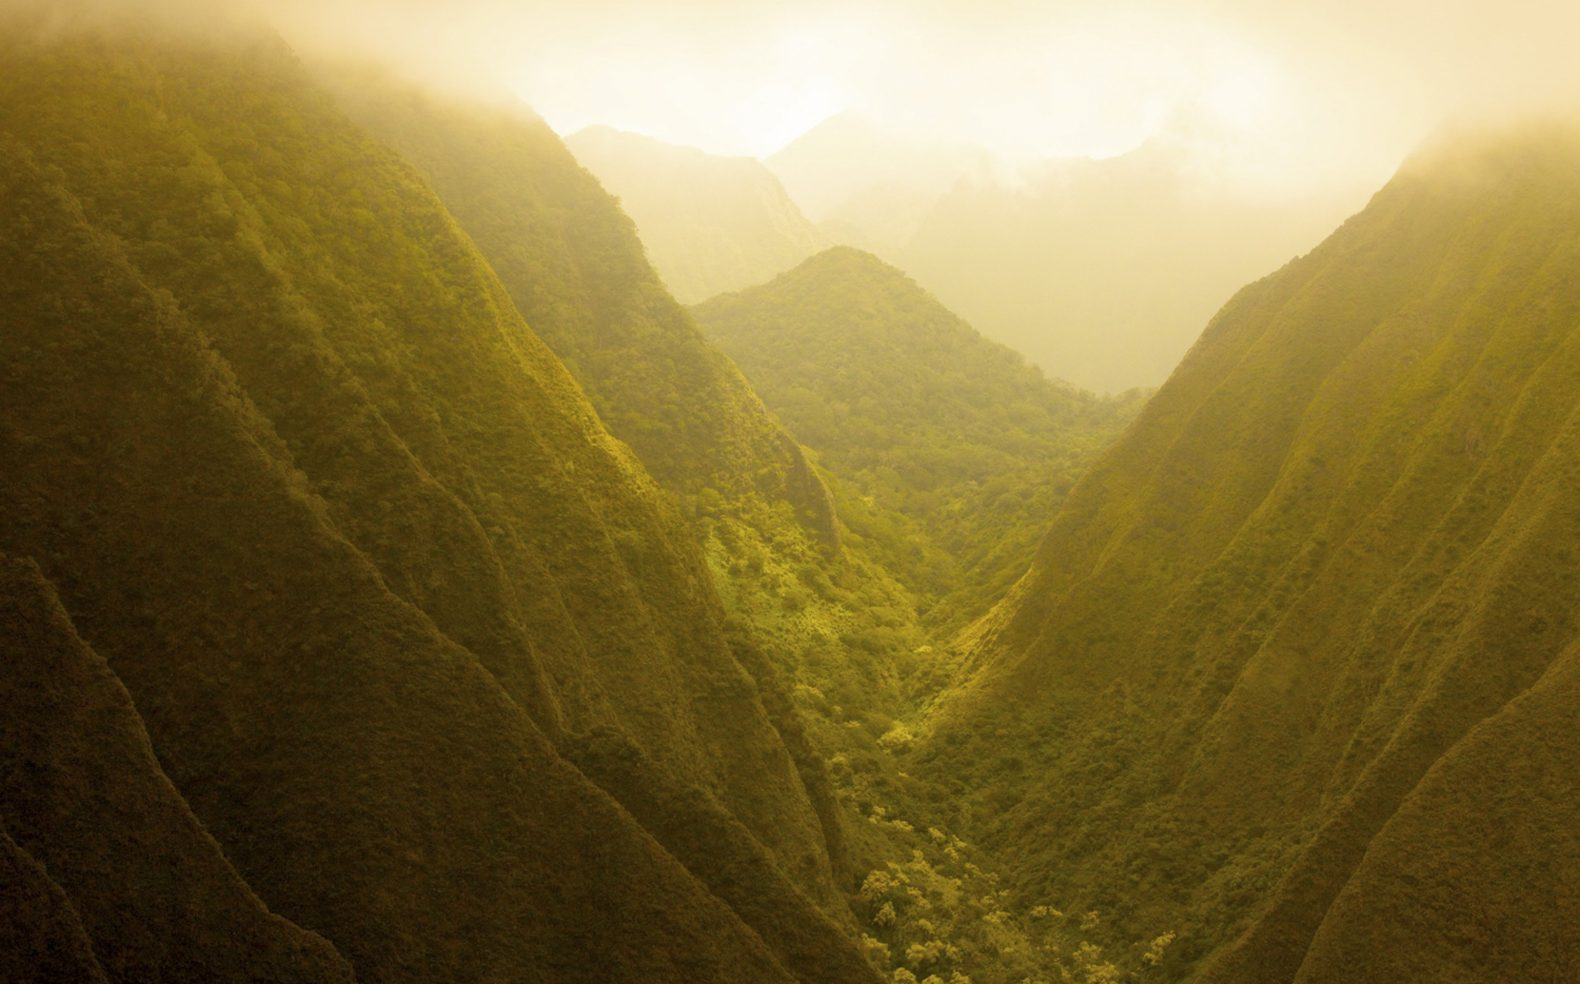 Professional travel landscape photograph taken between mountains covered with deep green foliage in a hazy yellow sunlight.